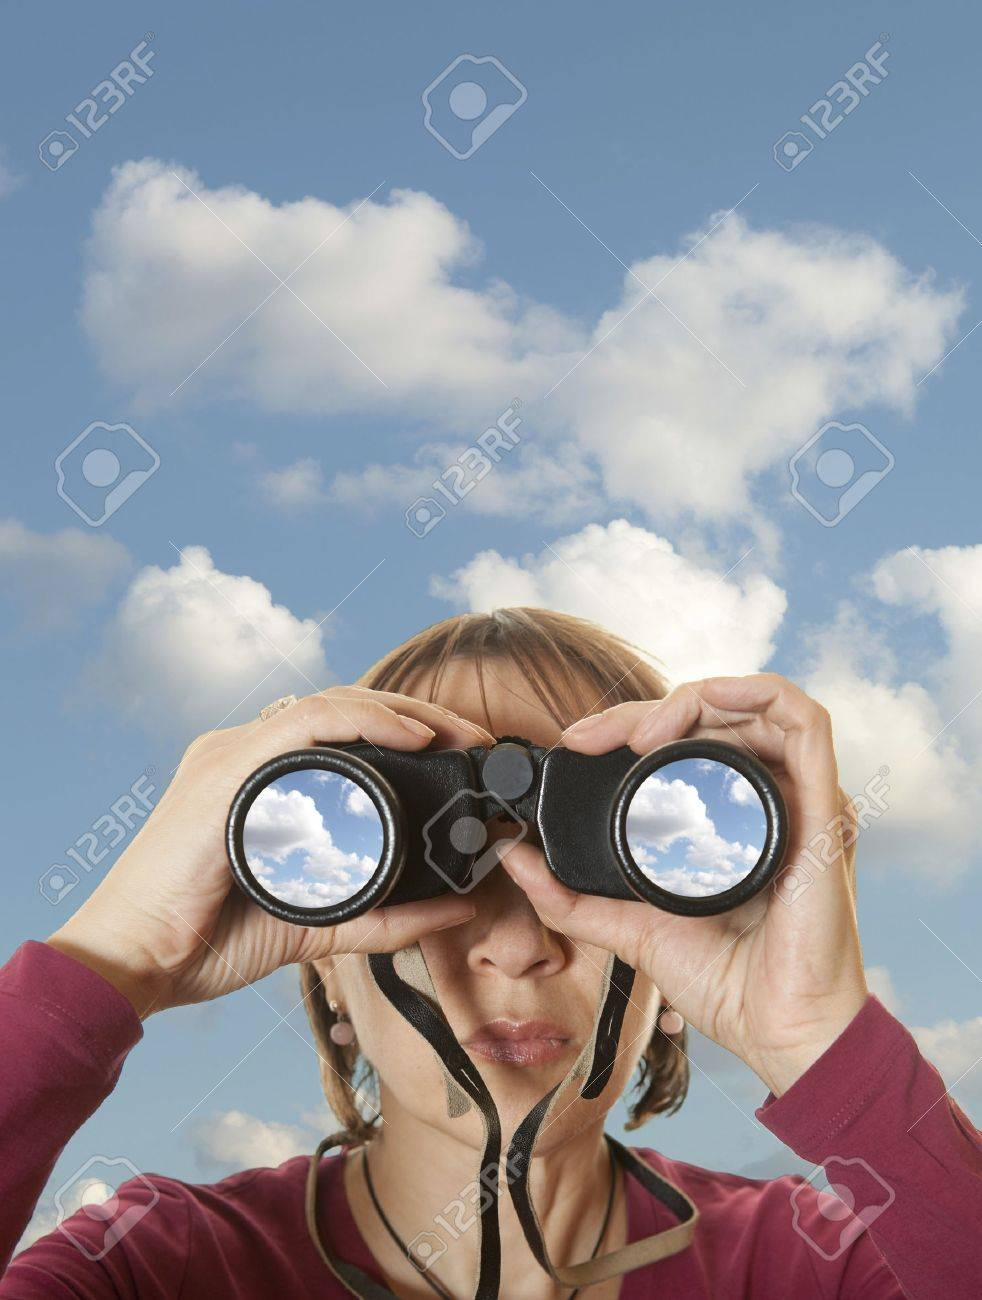 Attractive woman with binoculars in the sky - 16643345